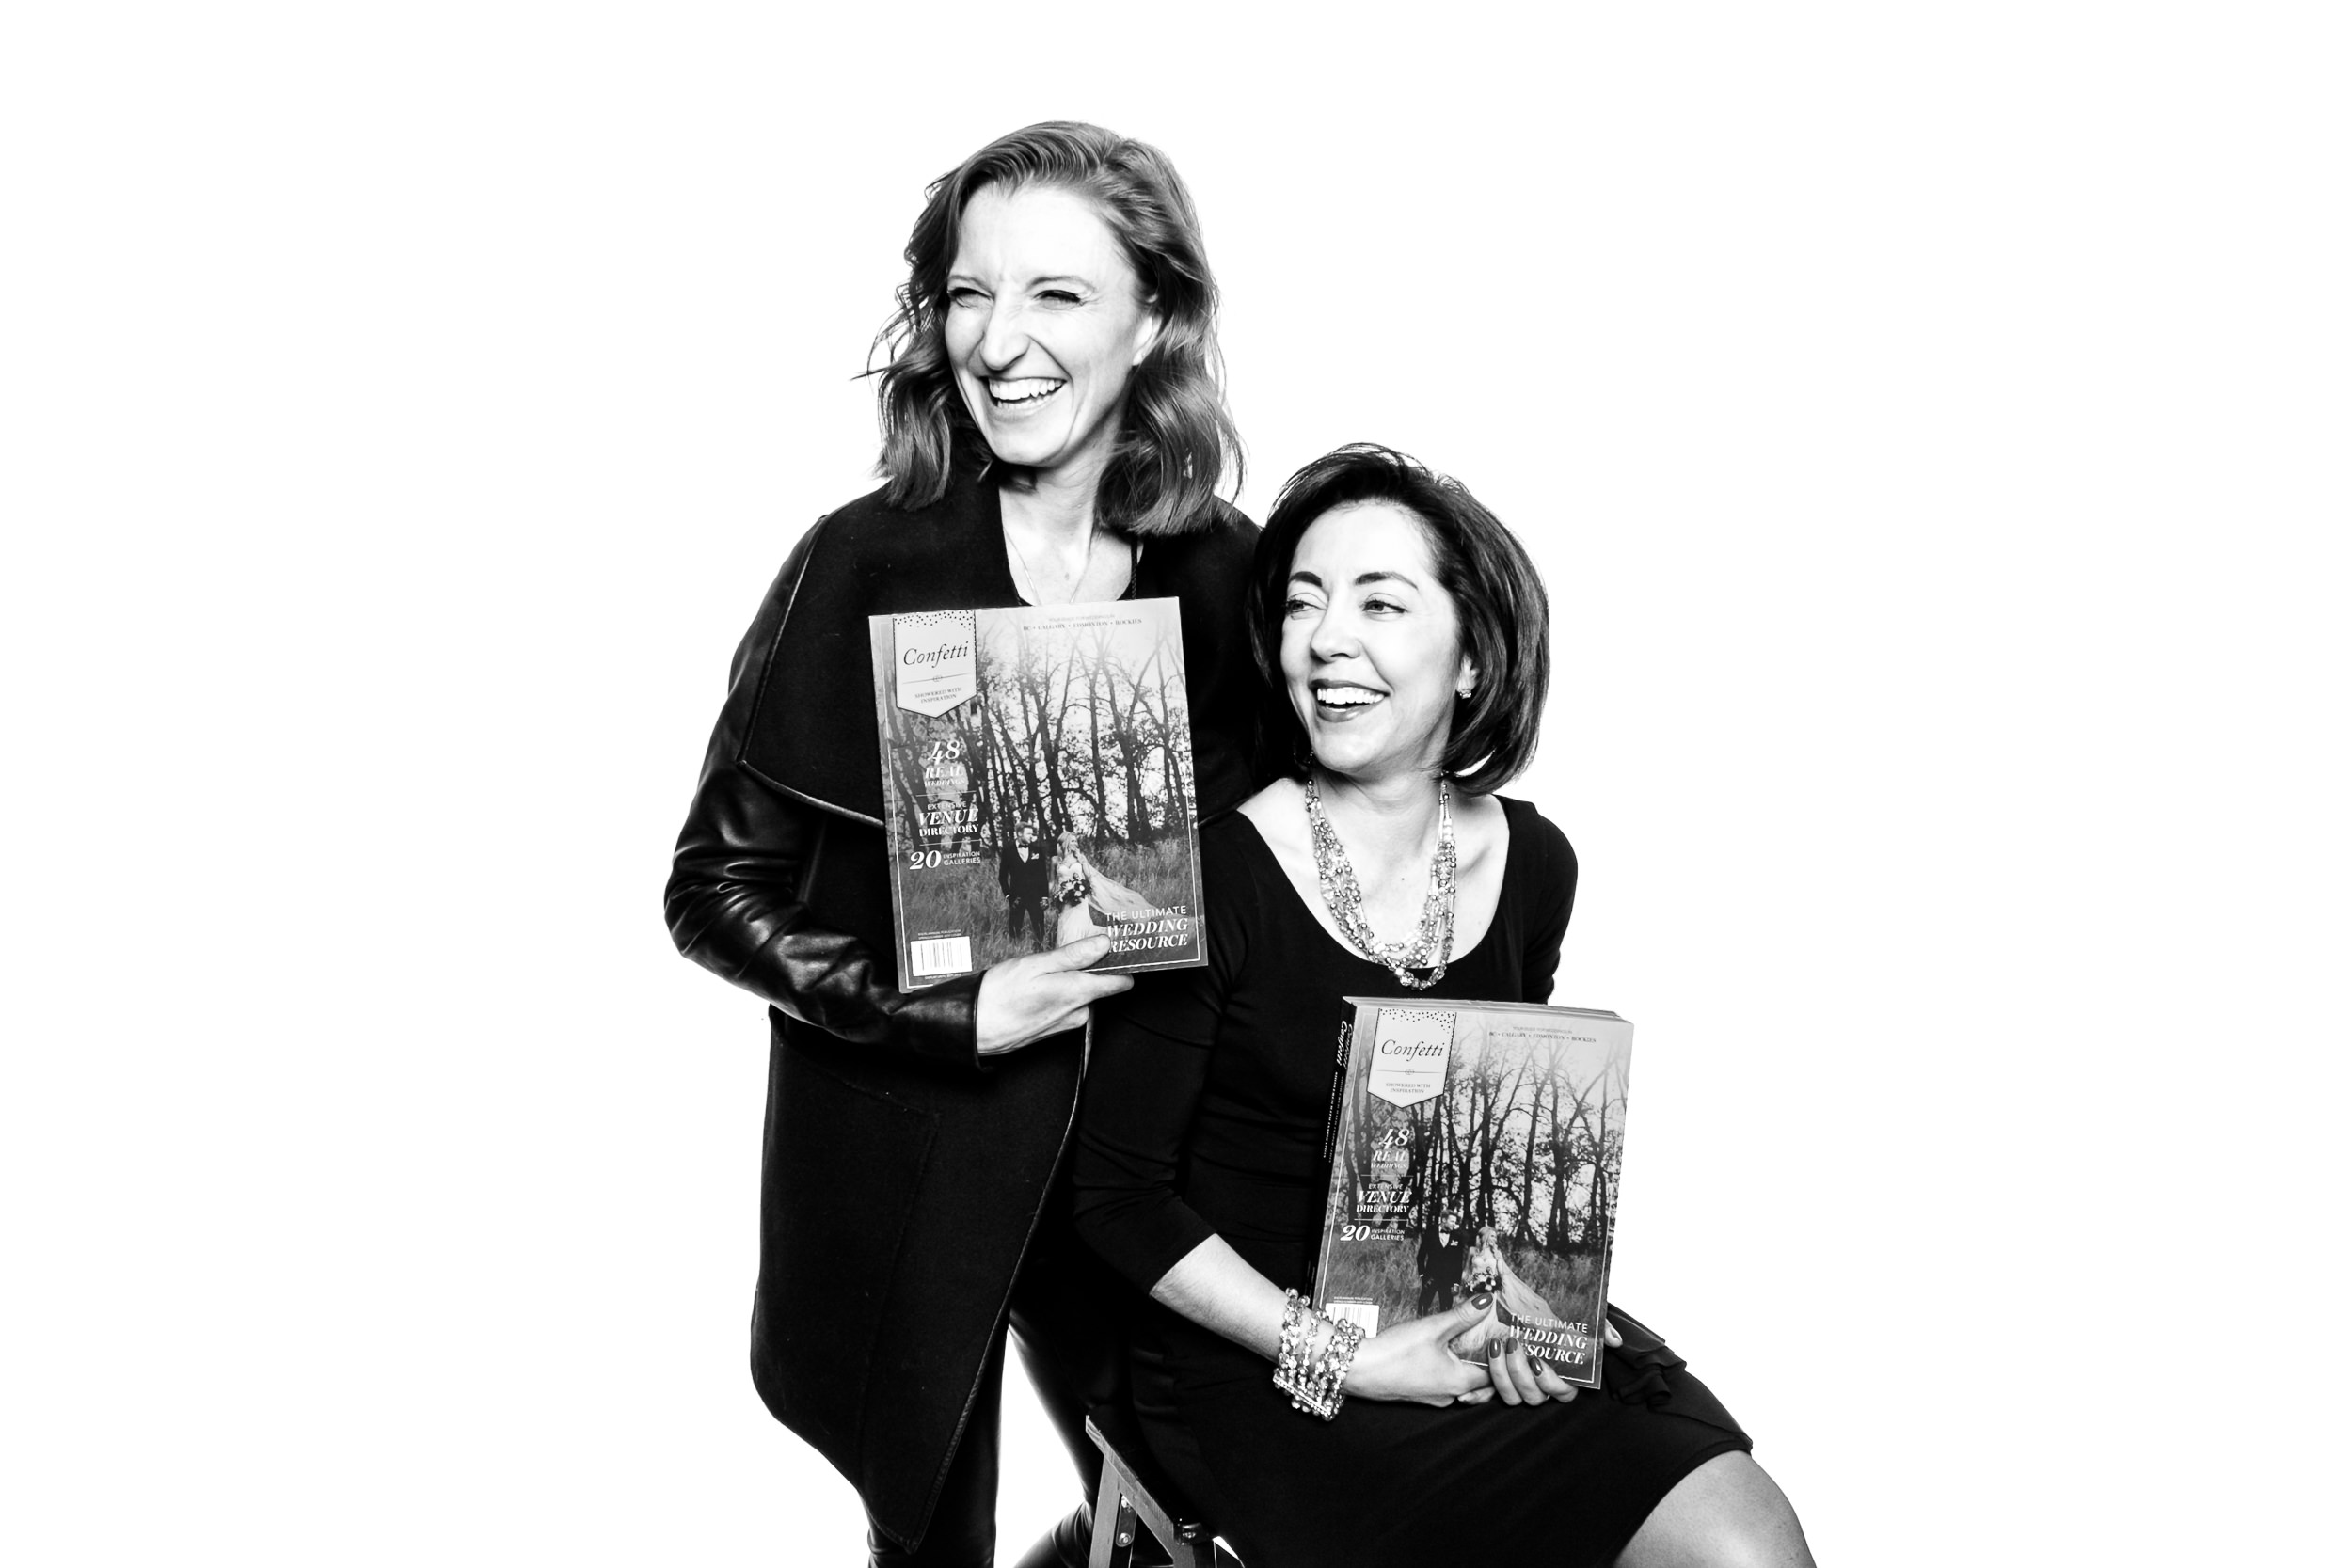 Alix and Fiona from Confetti Wedding Magazine rocking the black and white photo booth